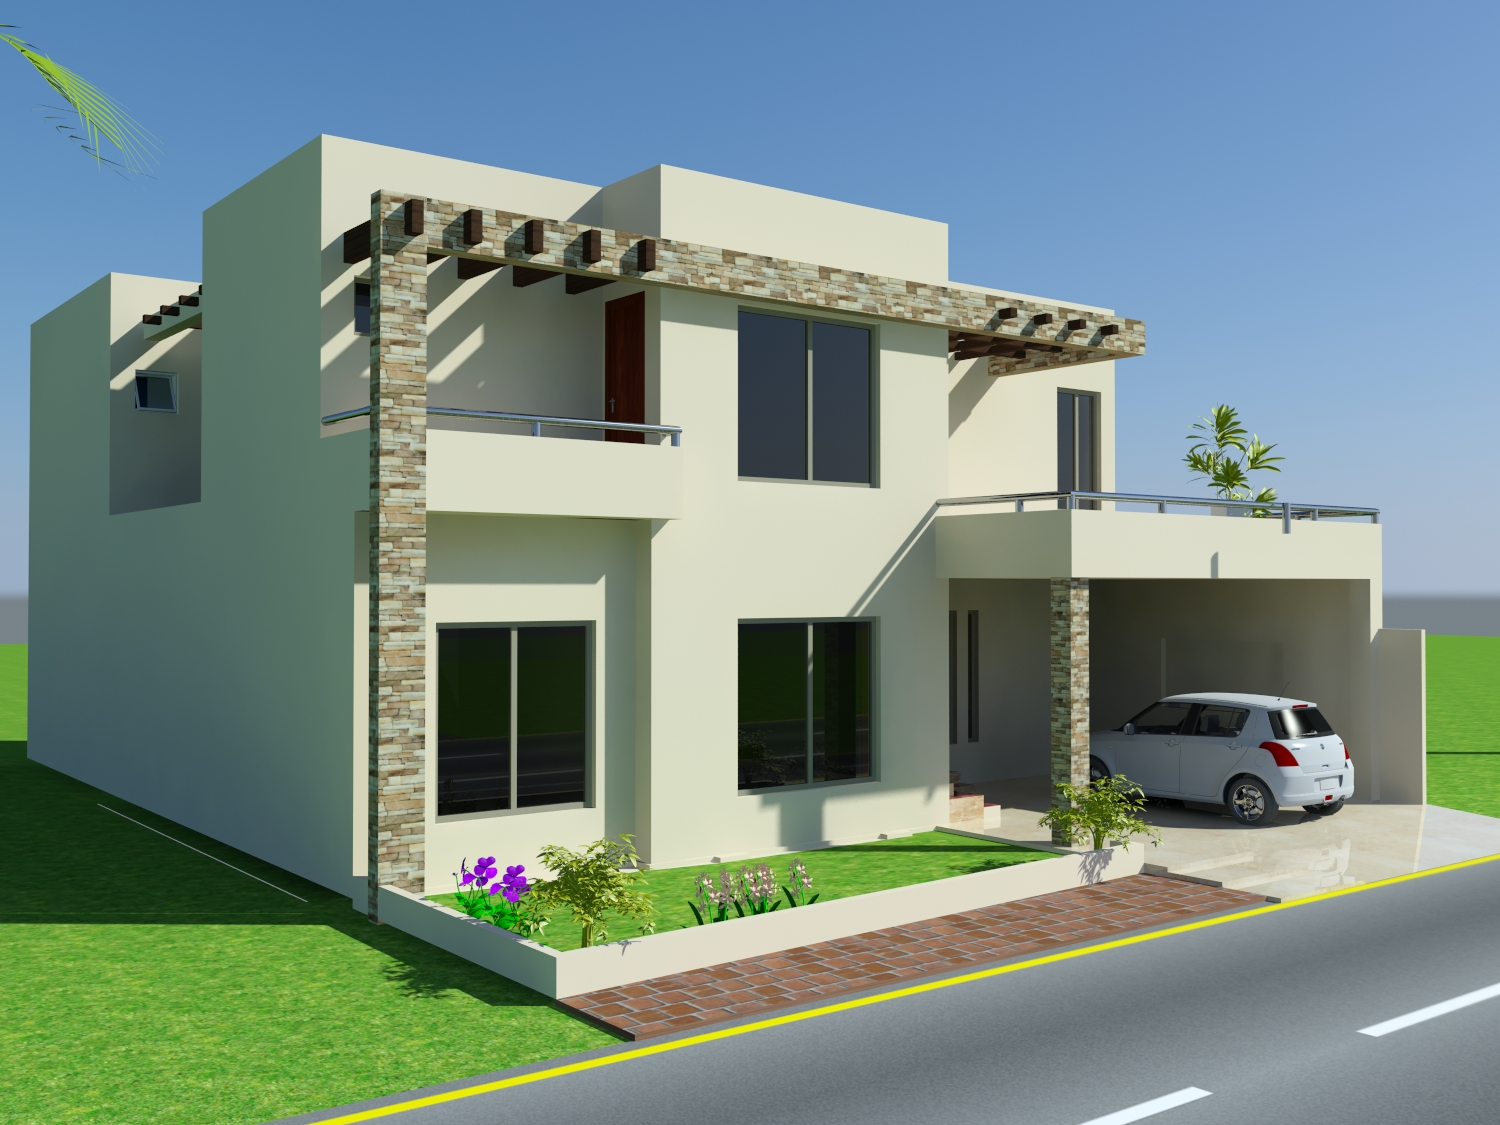 3d front 10 marla house design mian wali for 3d house design